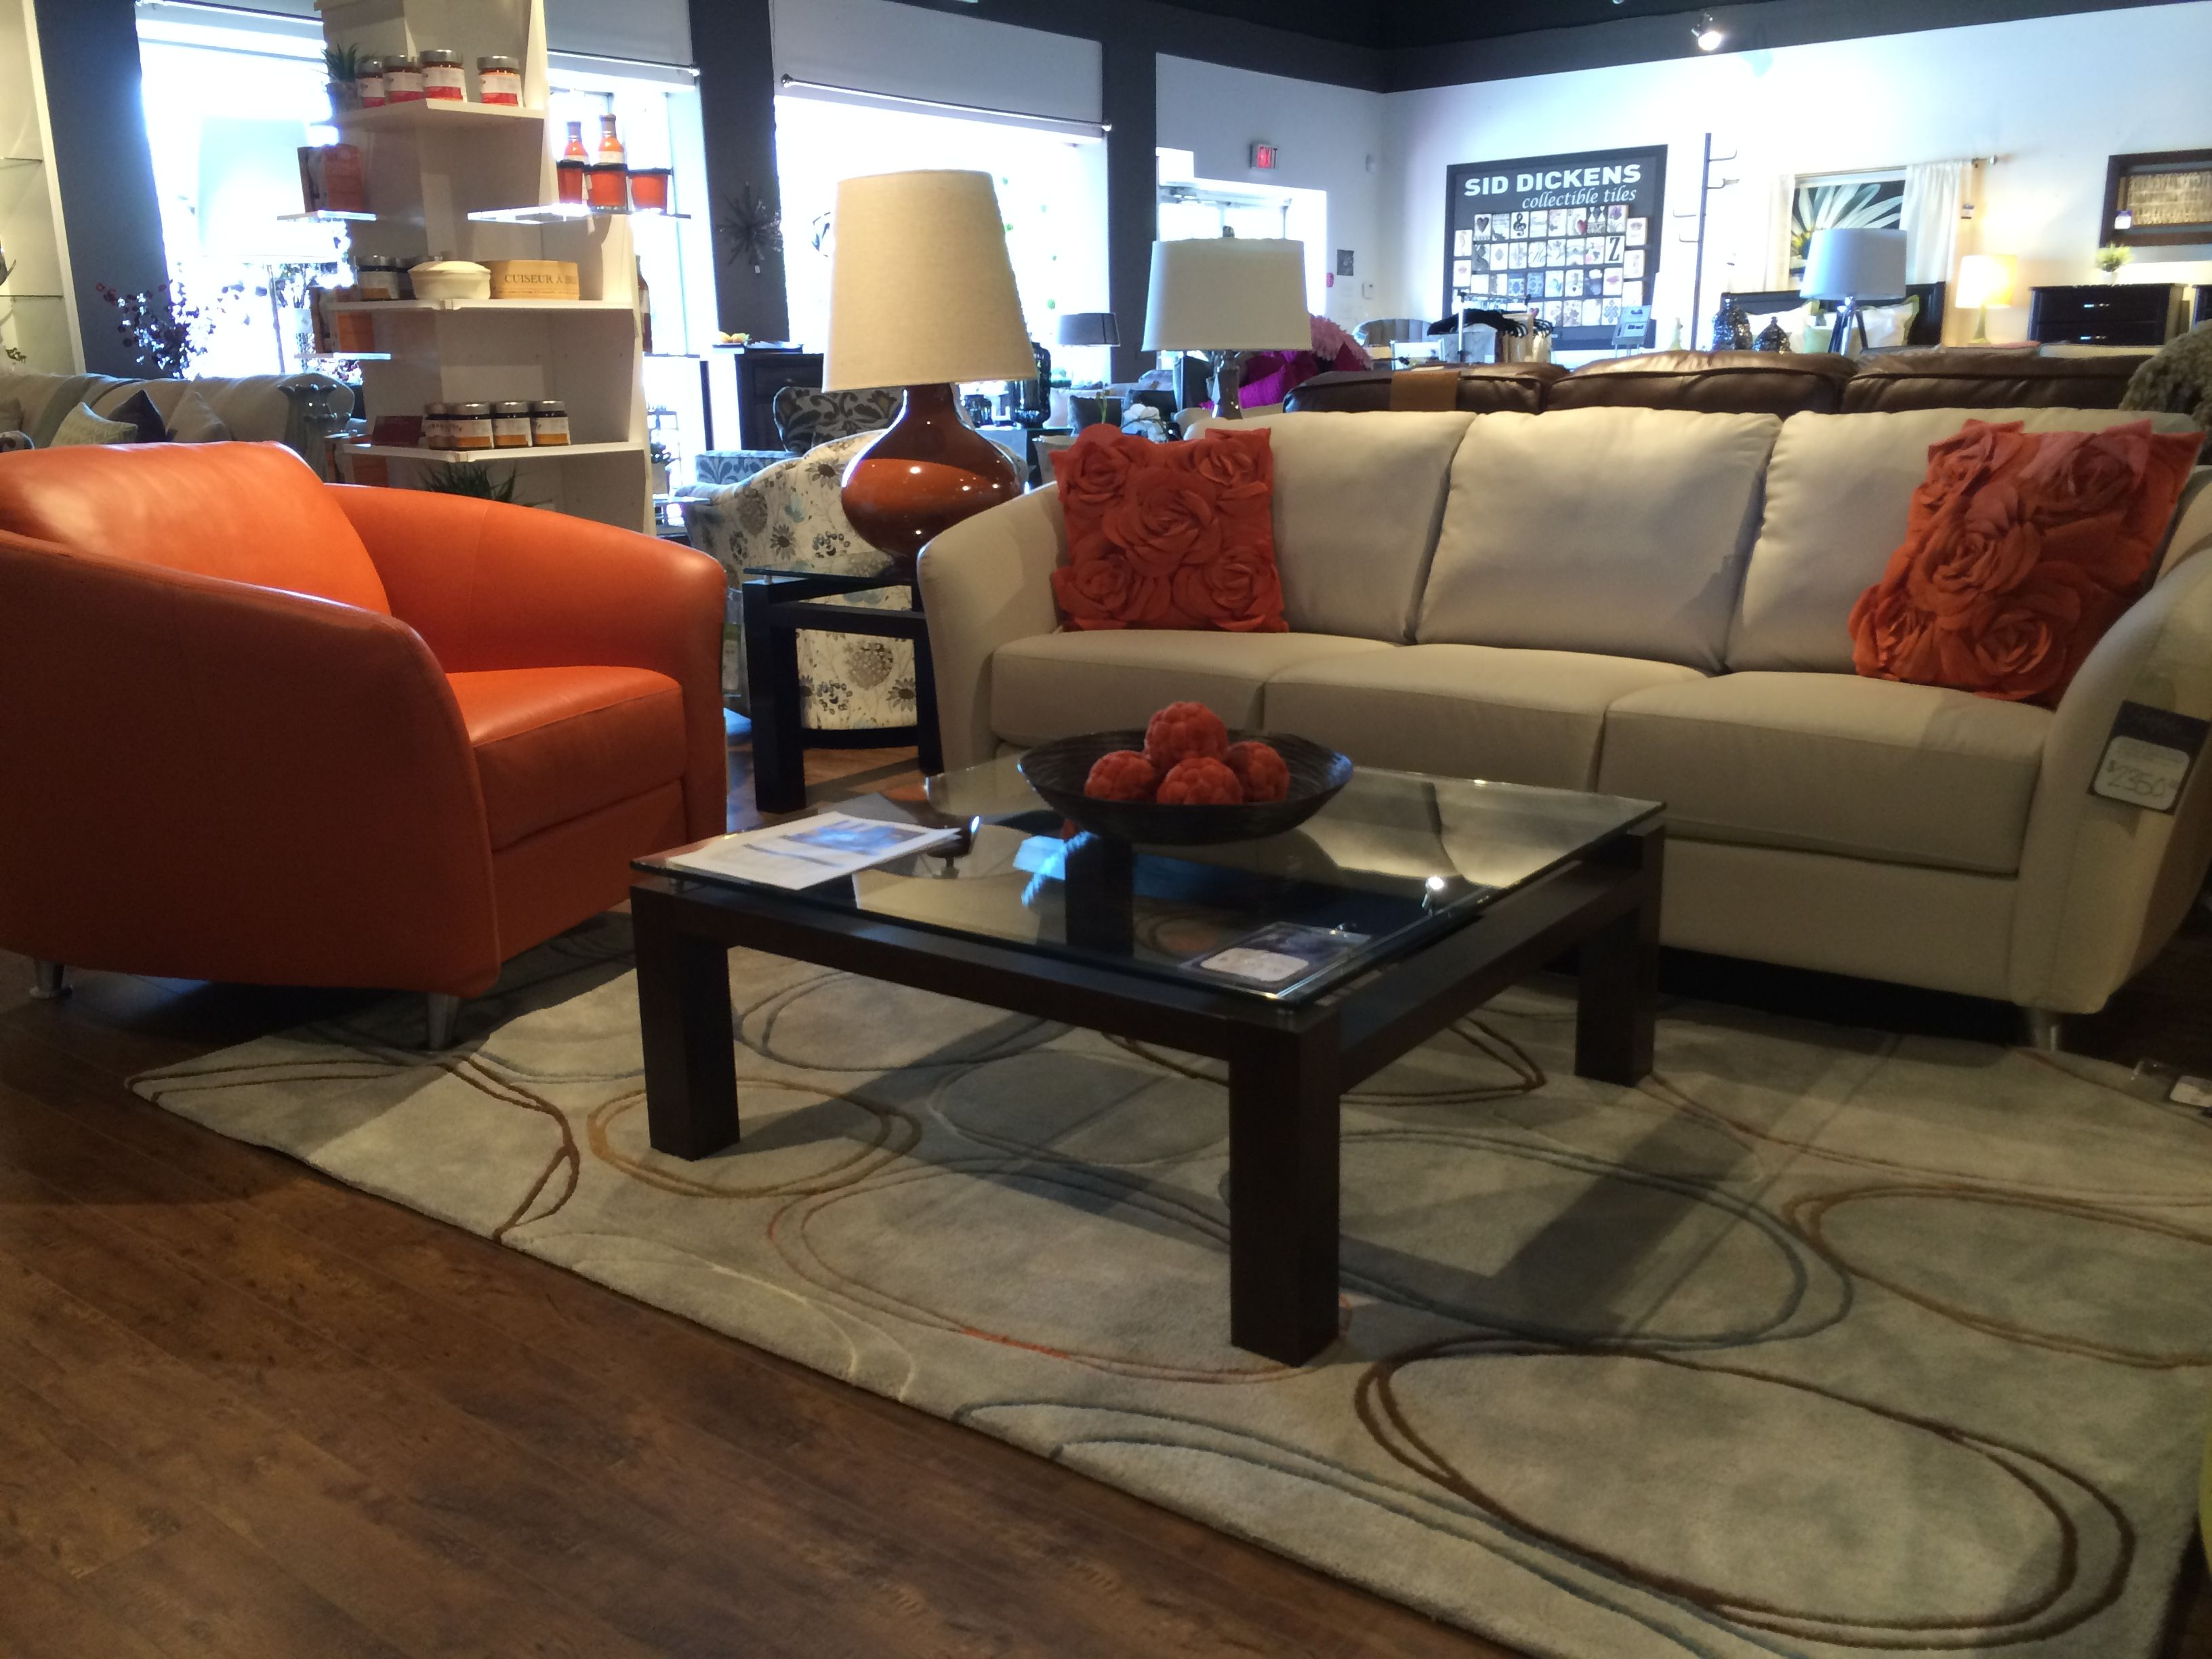 Stupendous Pallisers Alula Chair And Sofa Verbois Coffee Table And Uwap Interior Chair Design Uwaporg